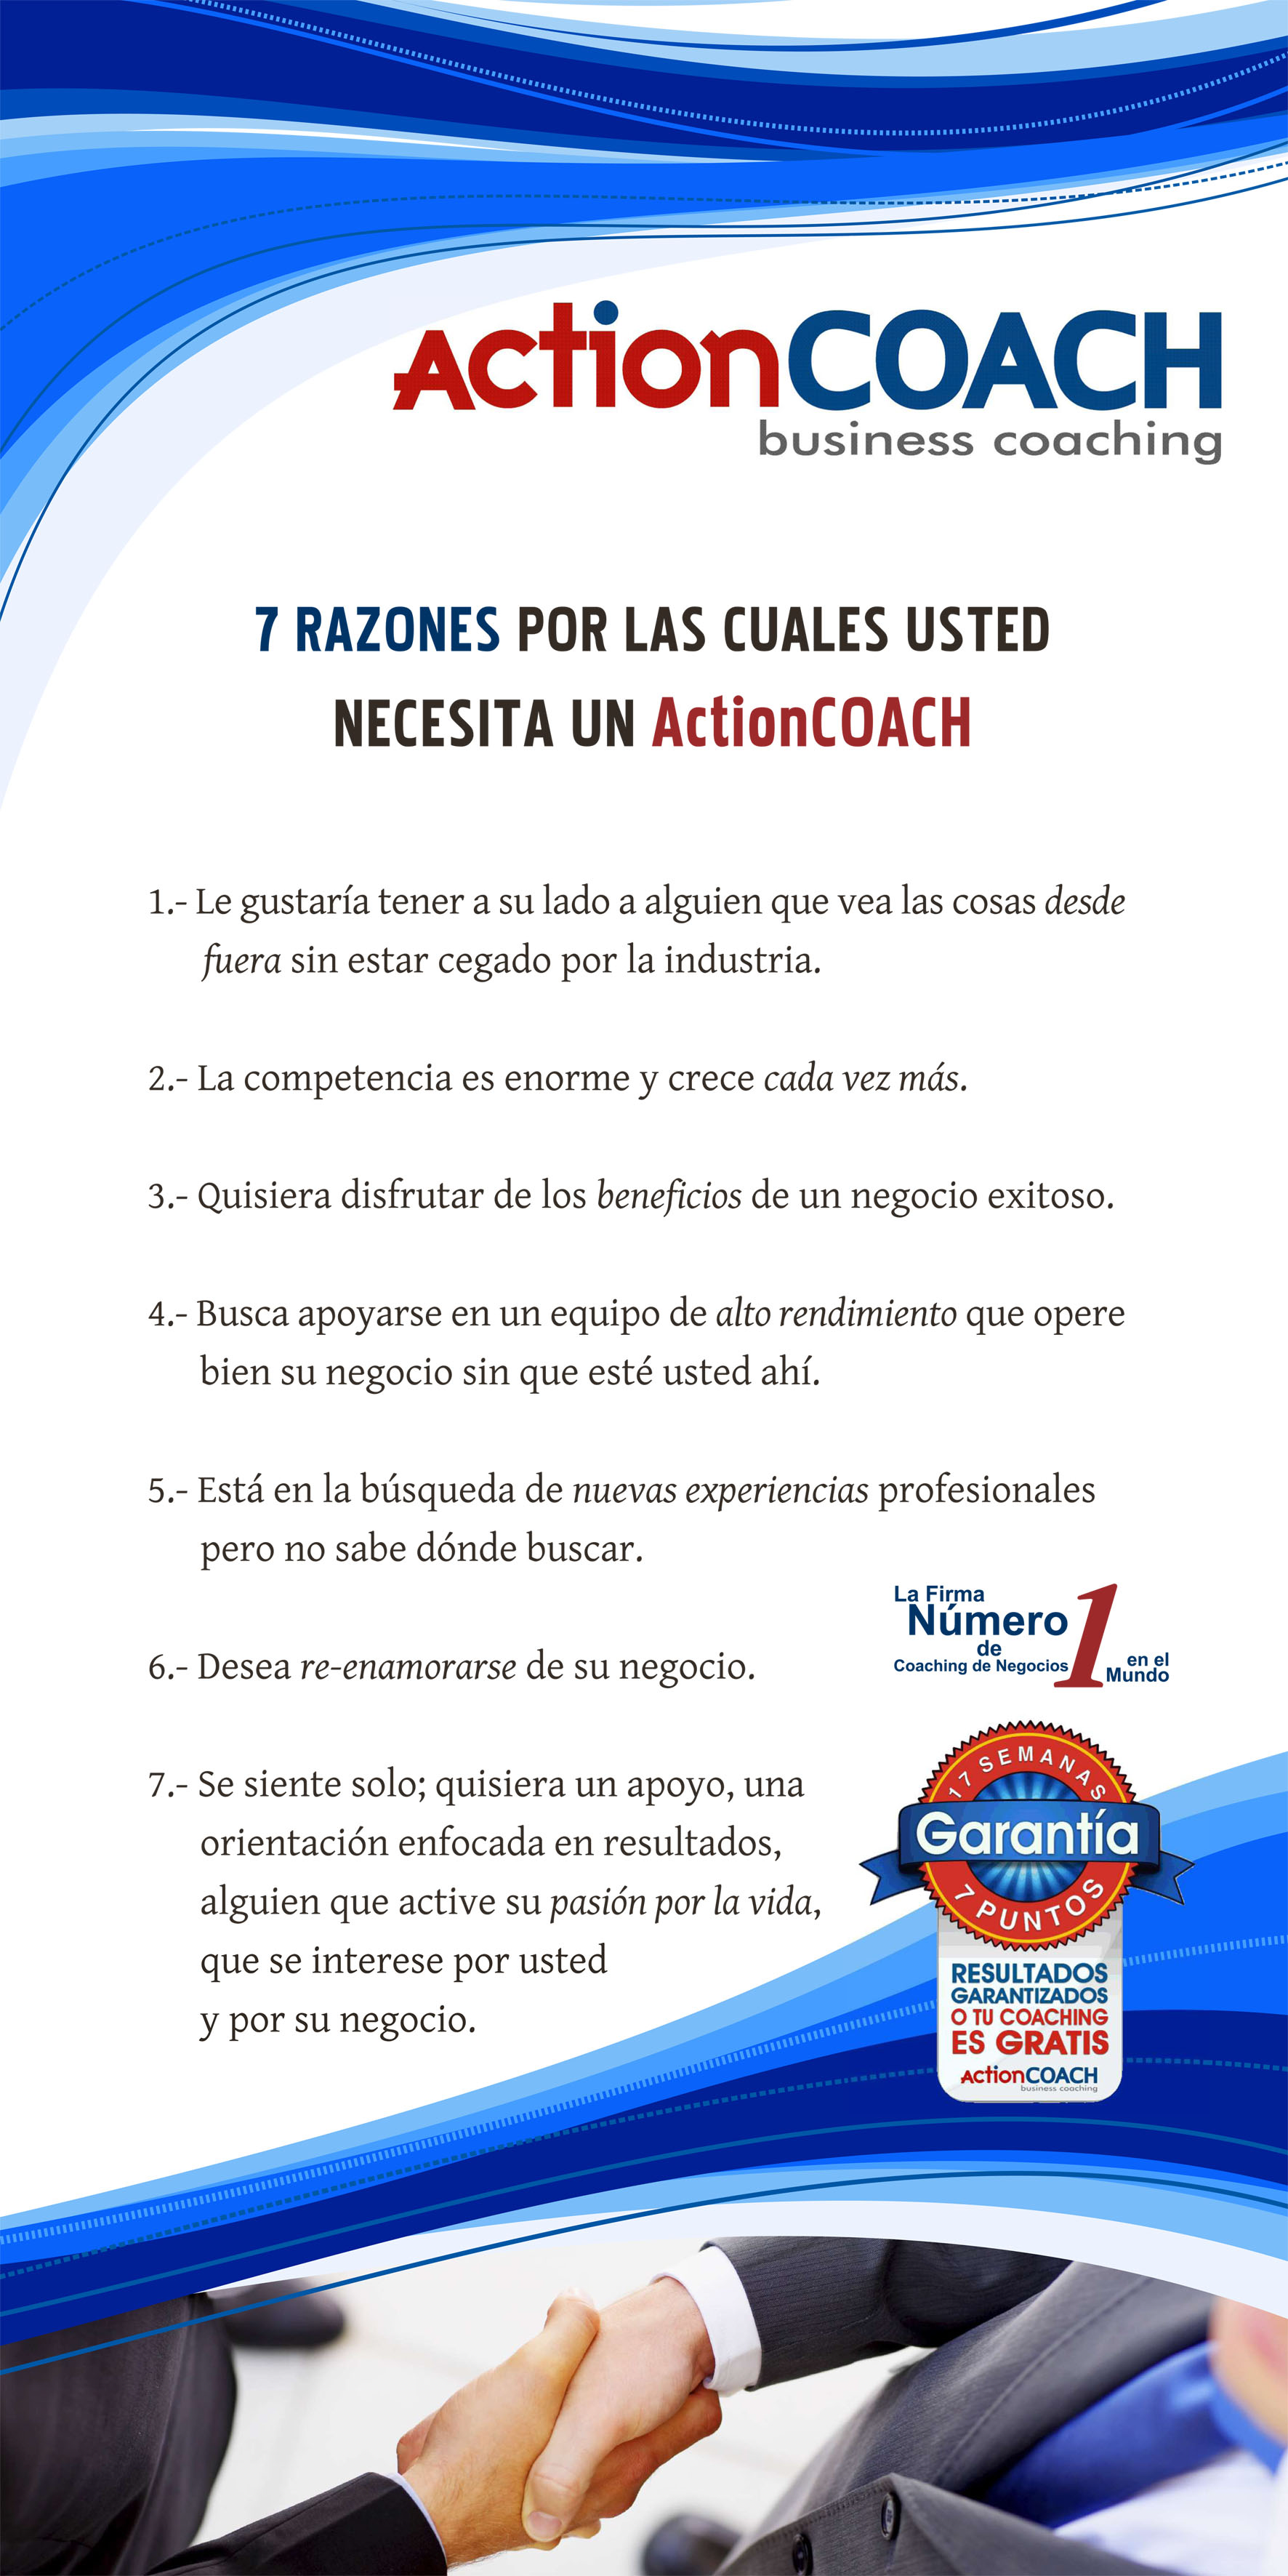 ActionCOACH Marketing And Advertising By Melissa Rendón